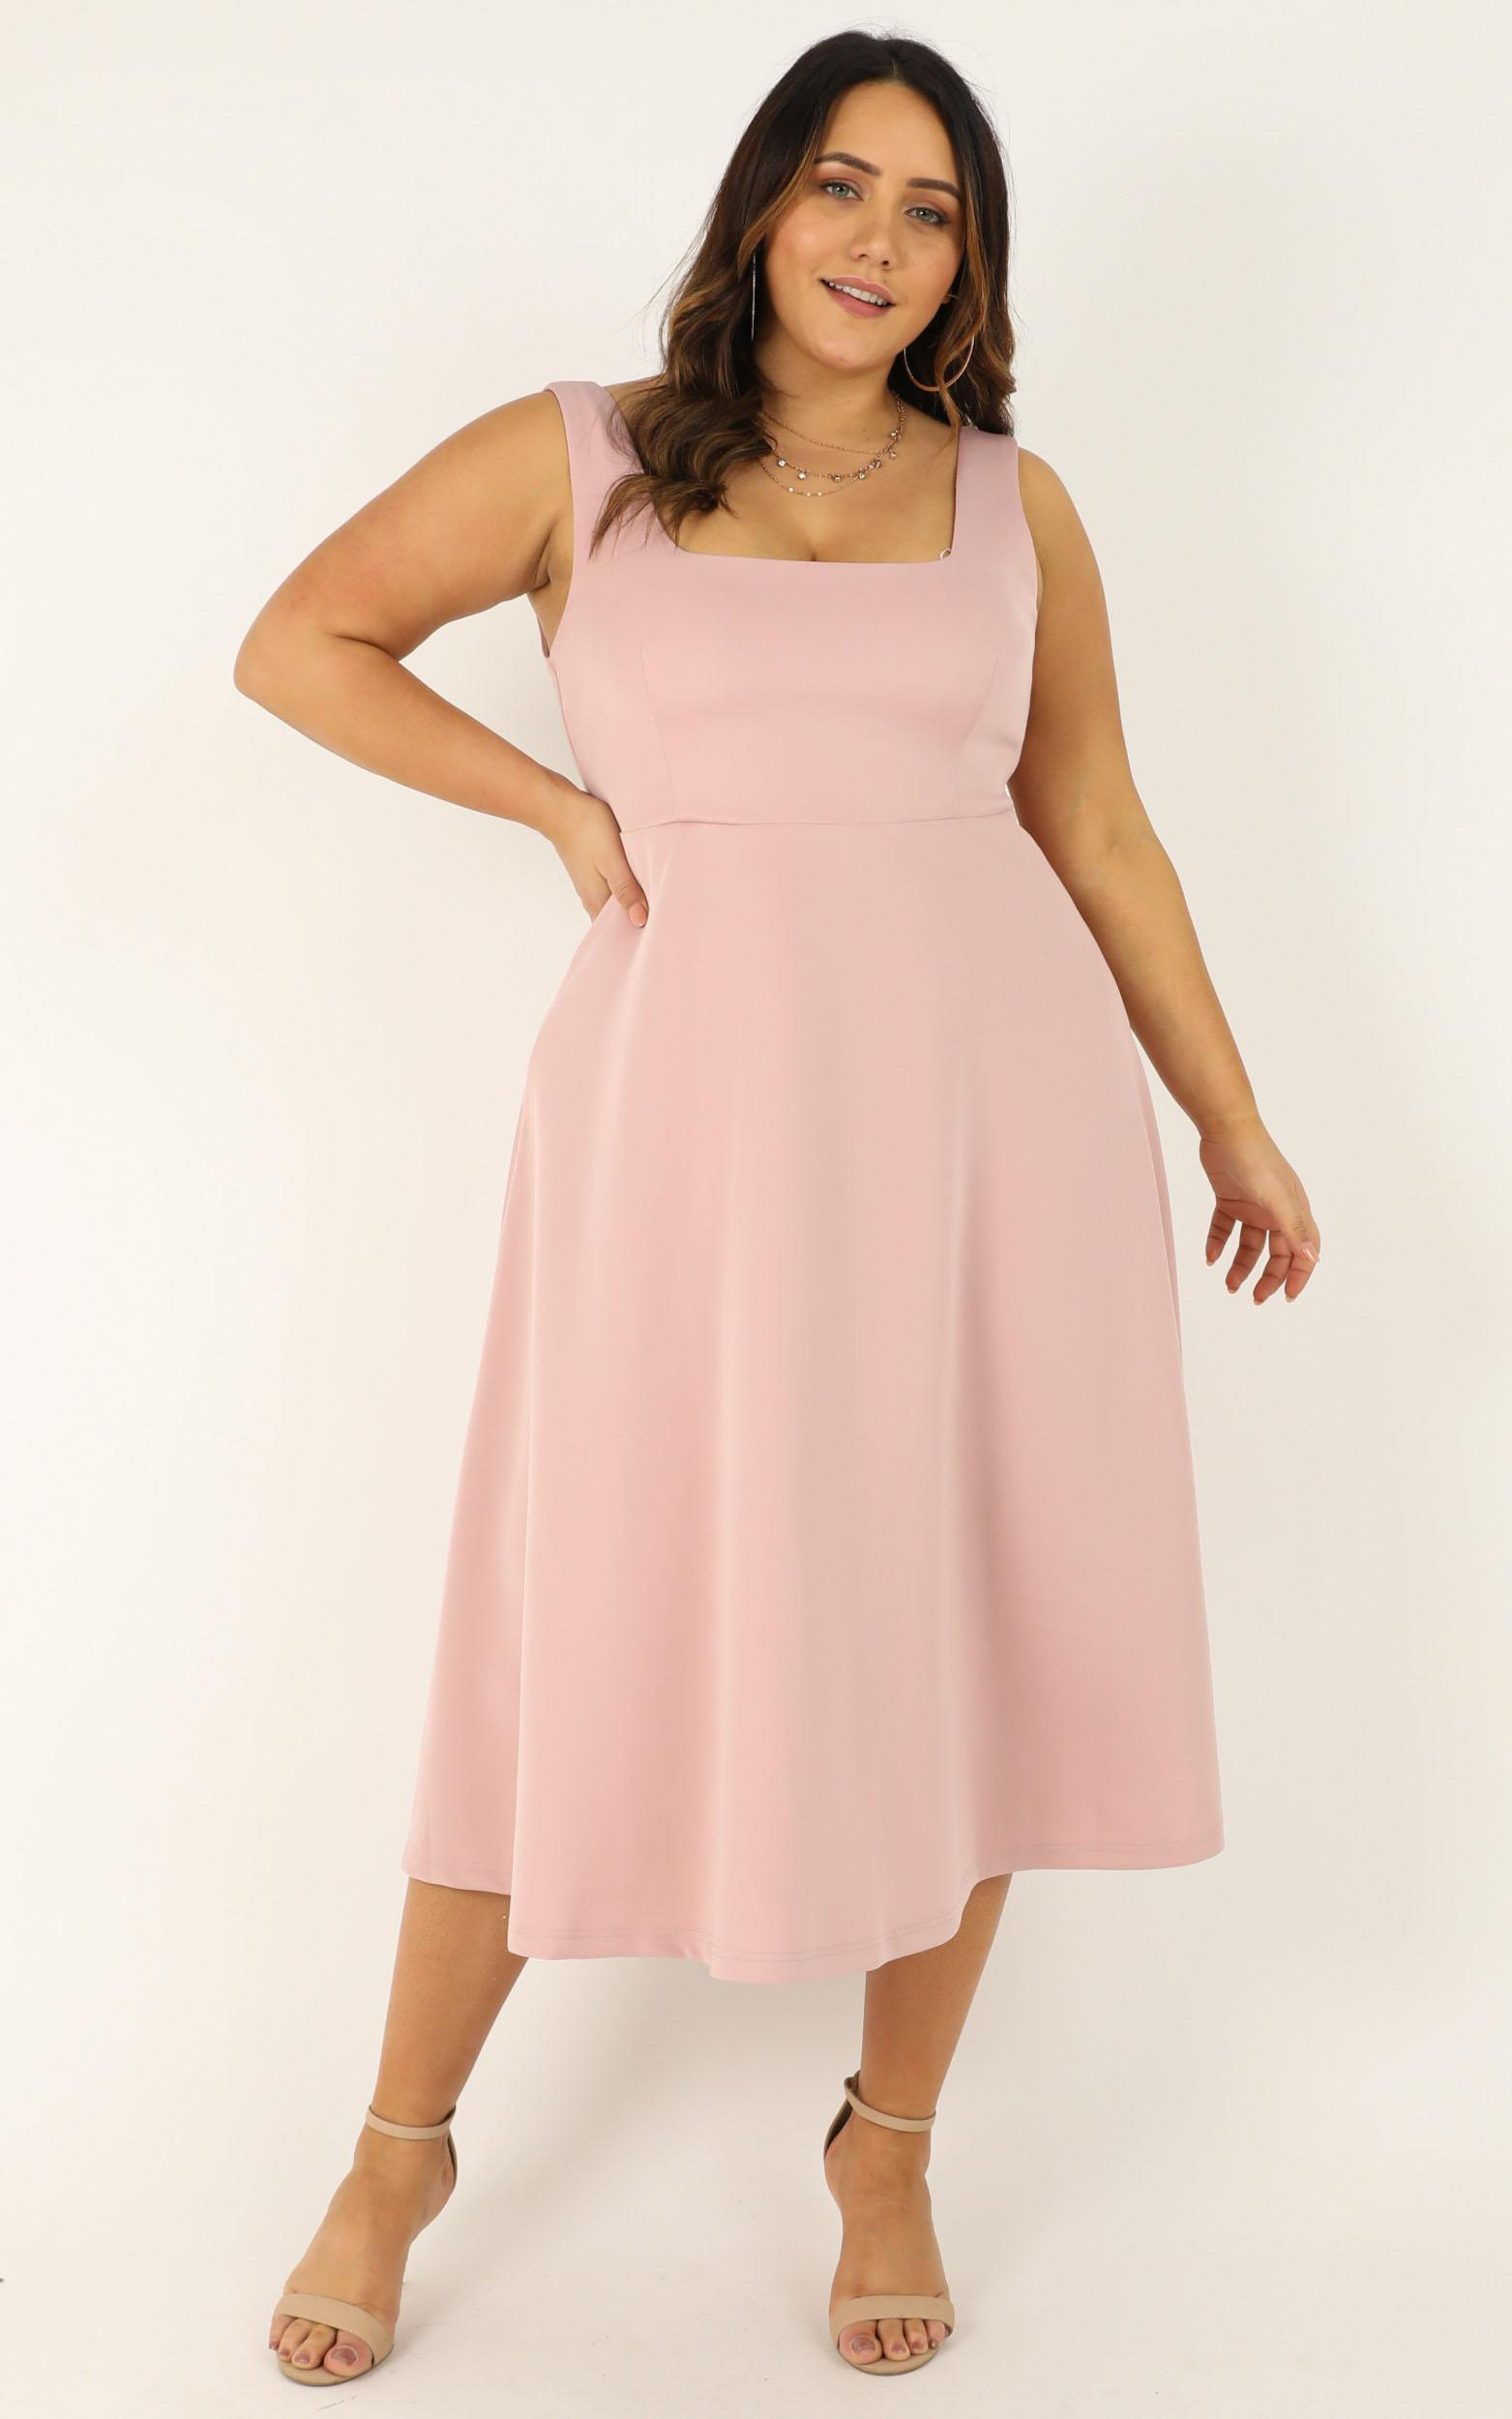 When I love Dress in blush - 20 (XXXXL), Pink, hi-res image number null